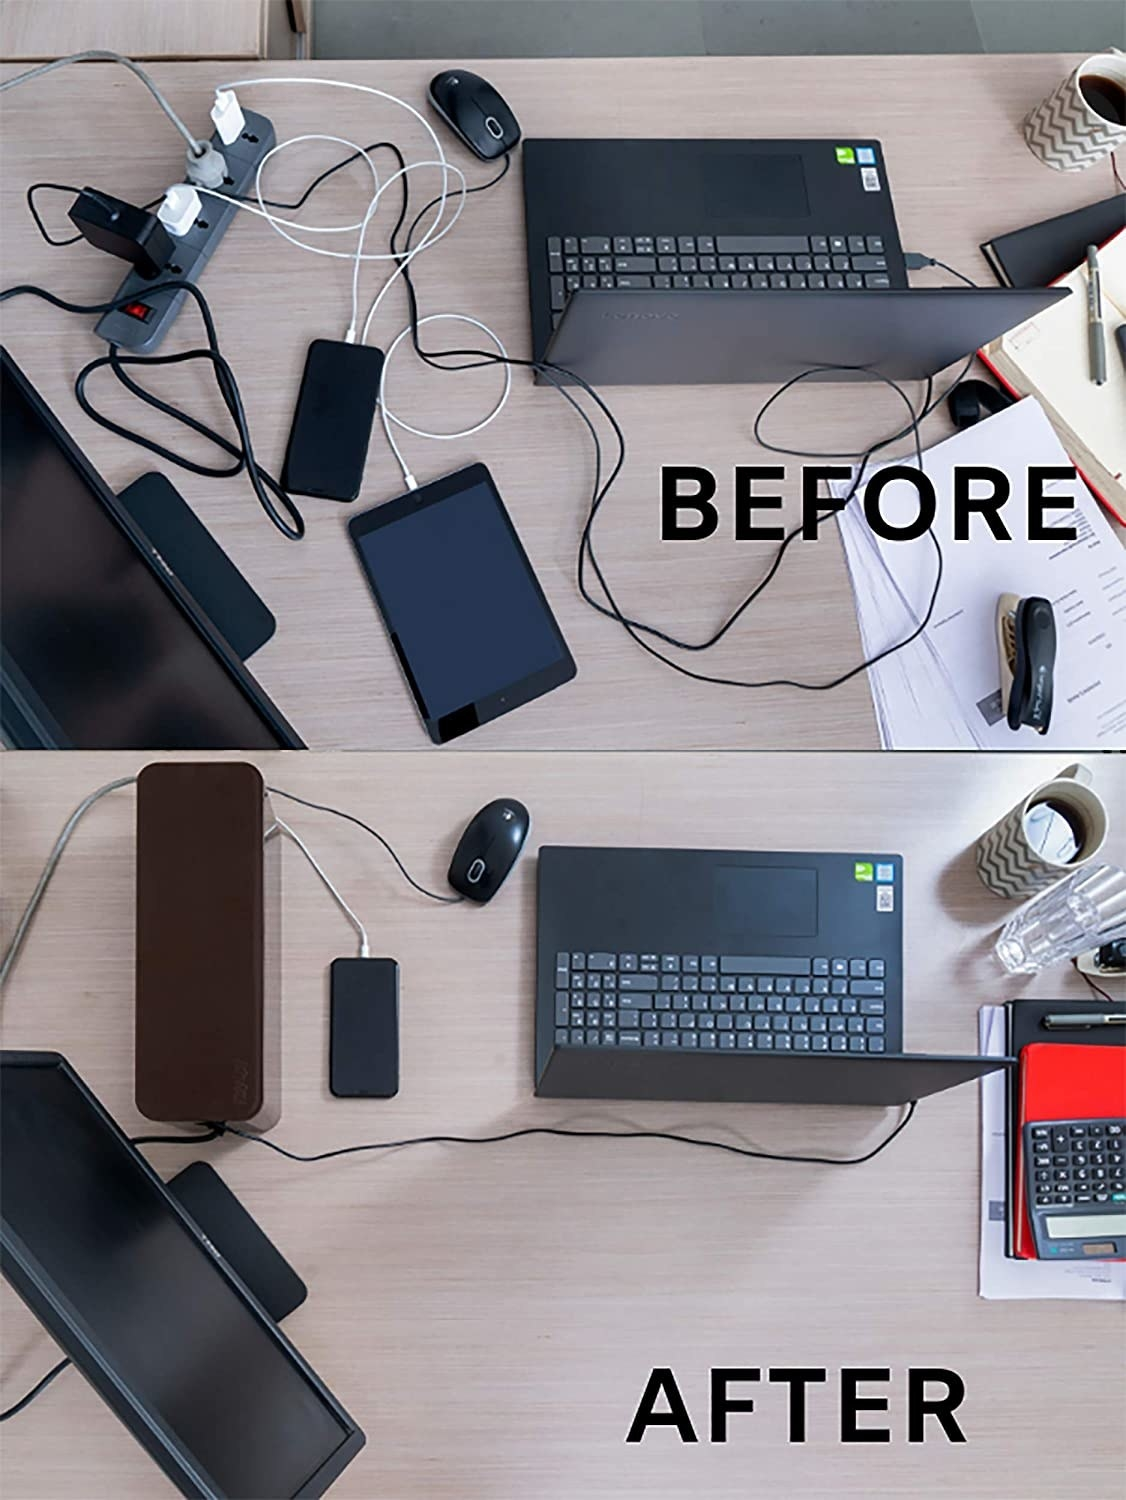 Before and after using the wire box, one image show a tidy desk and the other an untidy one